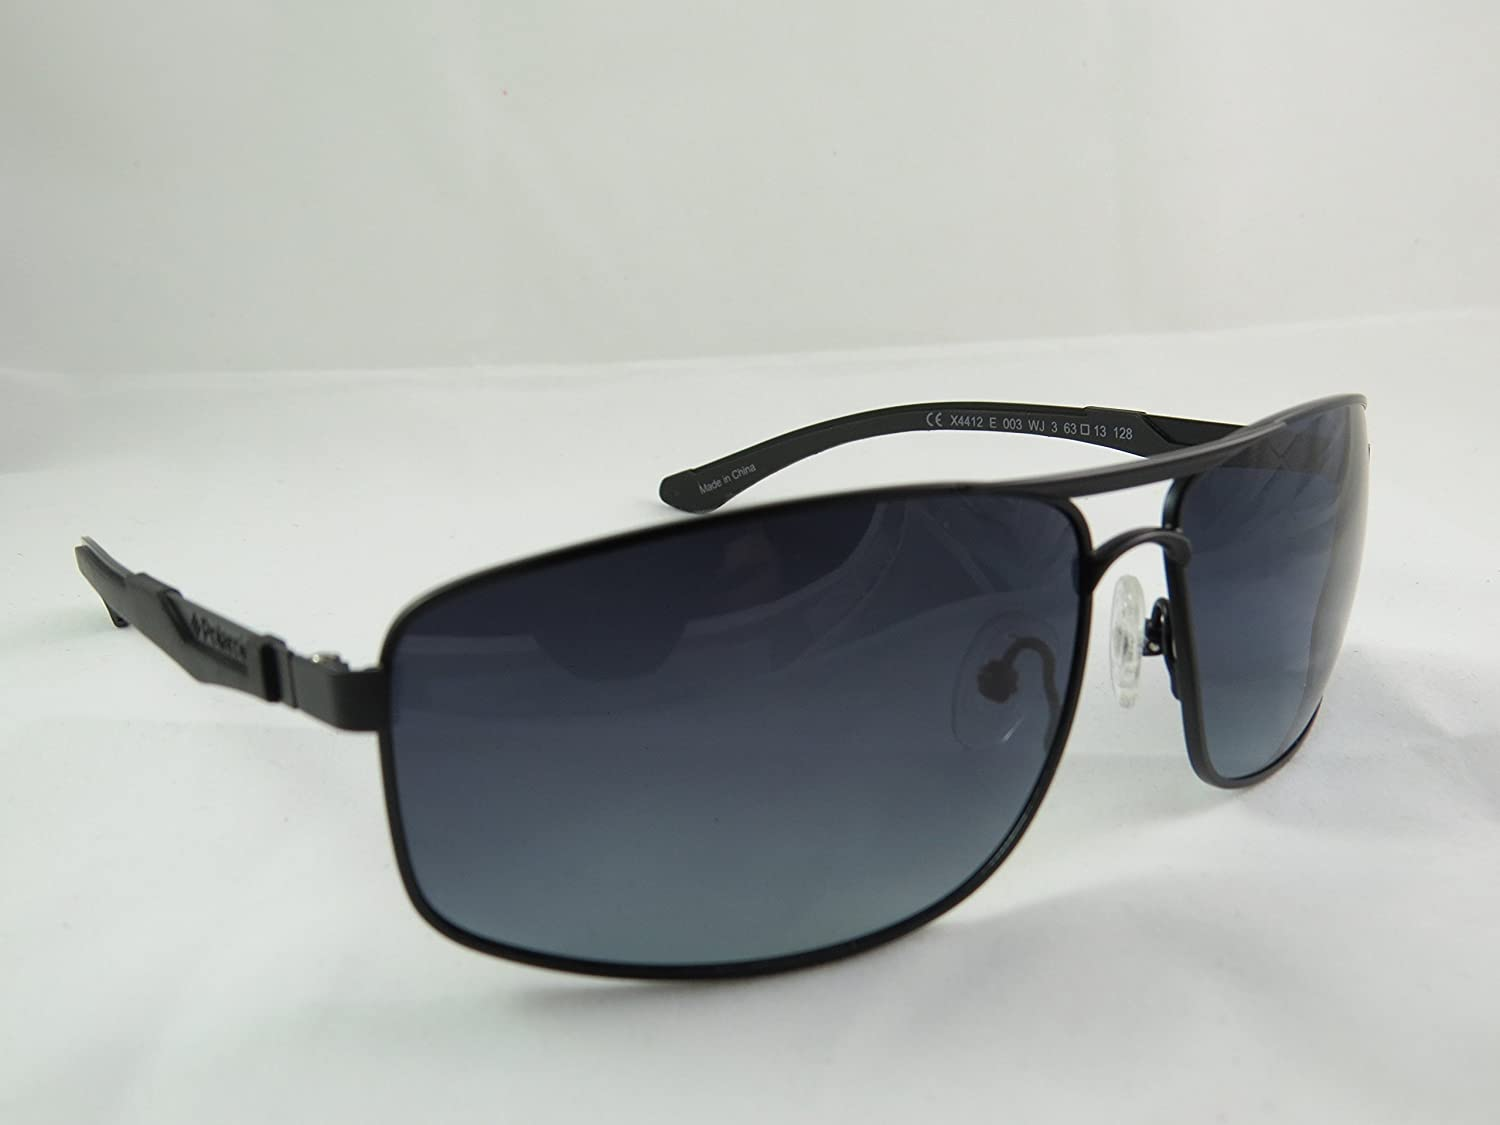 669a7978d52 Polaroid Men s X 4412 S Sunglasses X4412S-0003-Wj-6  Amazon.co.uk  Clothing